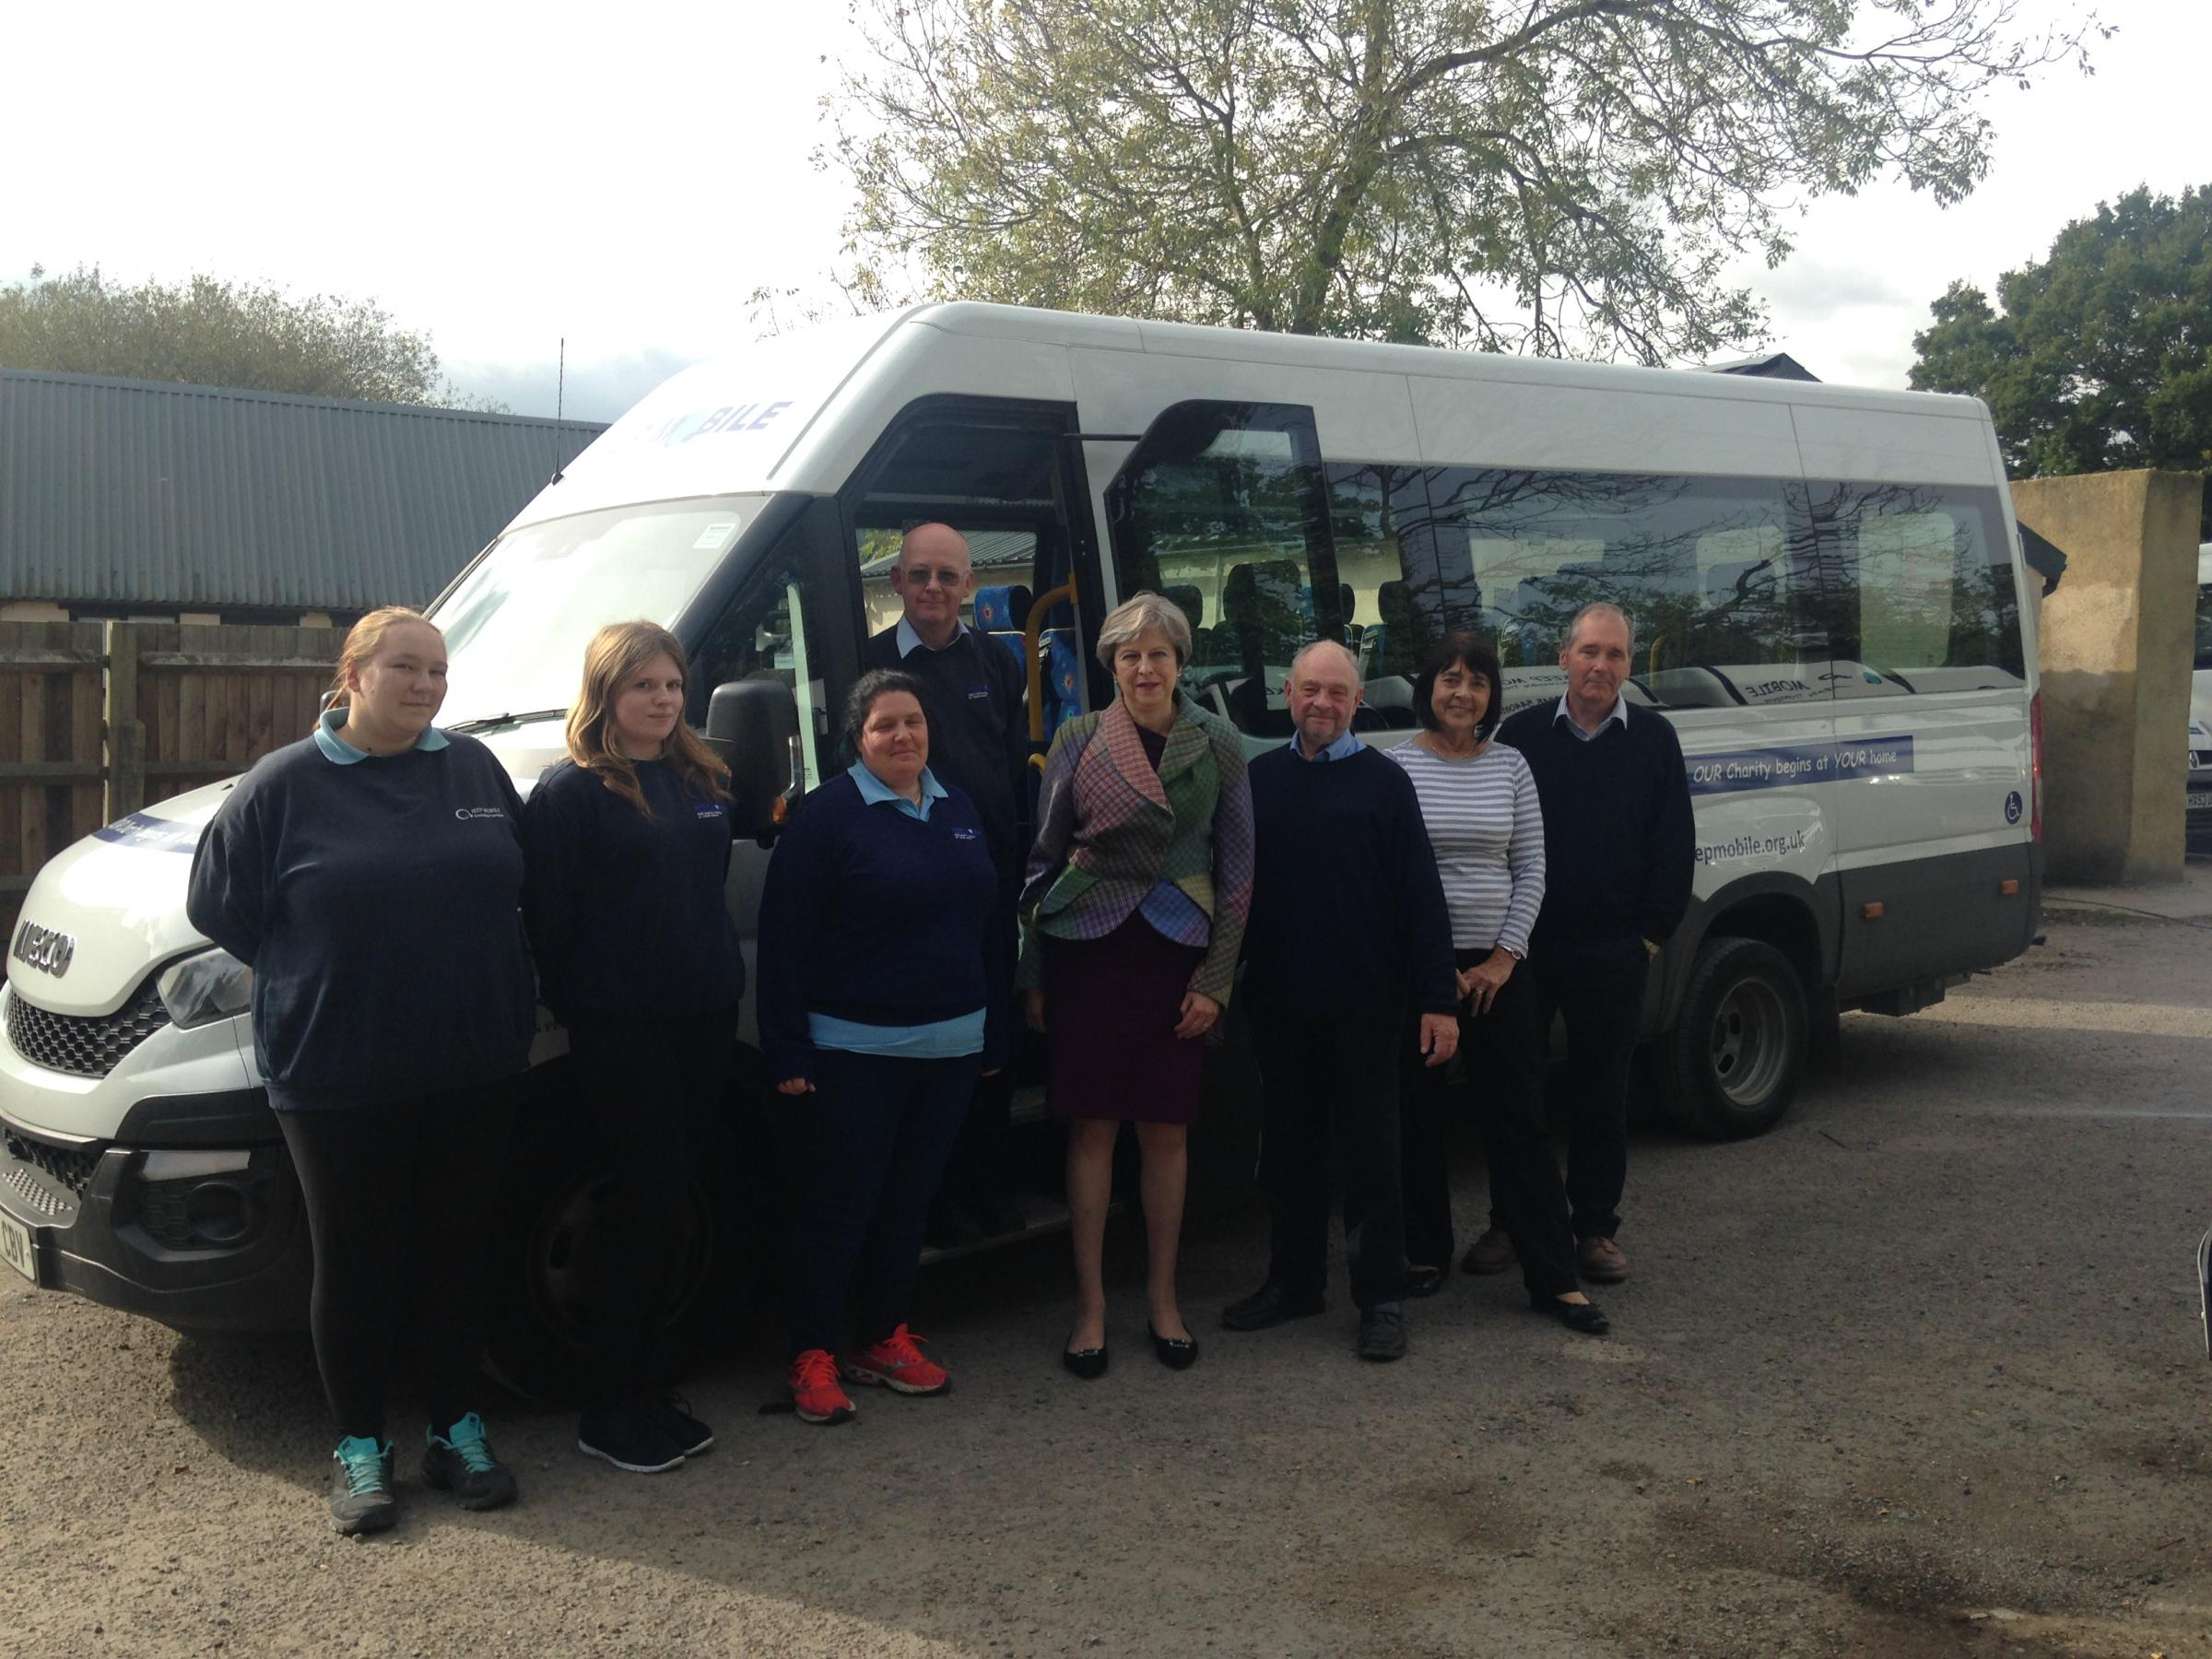 Prime Minister visits local charity and takes minibus ride around town